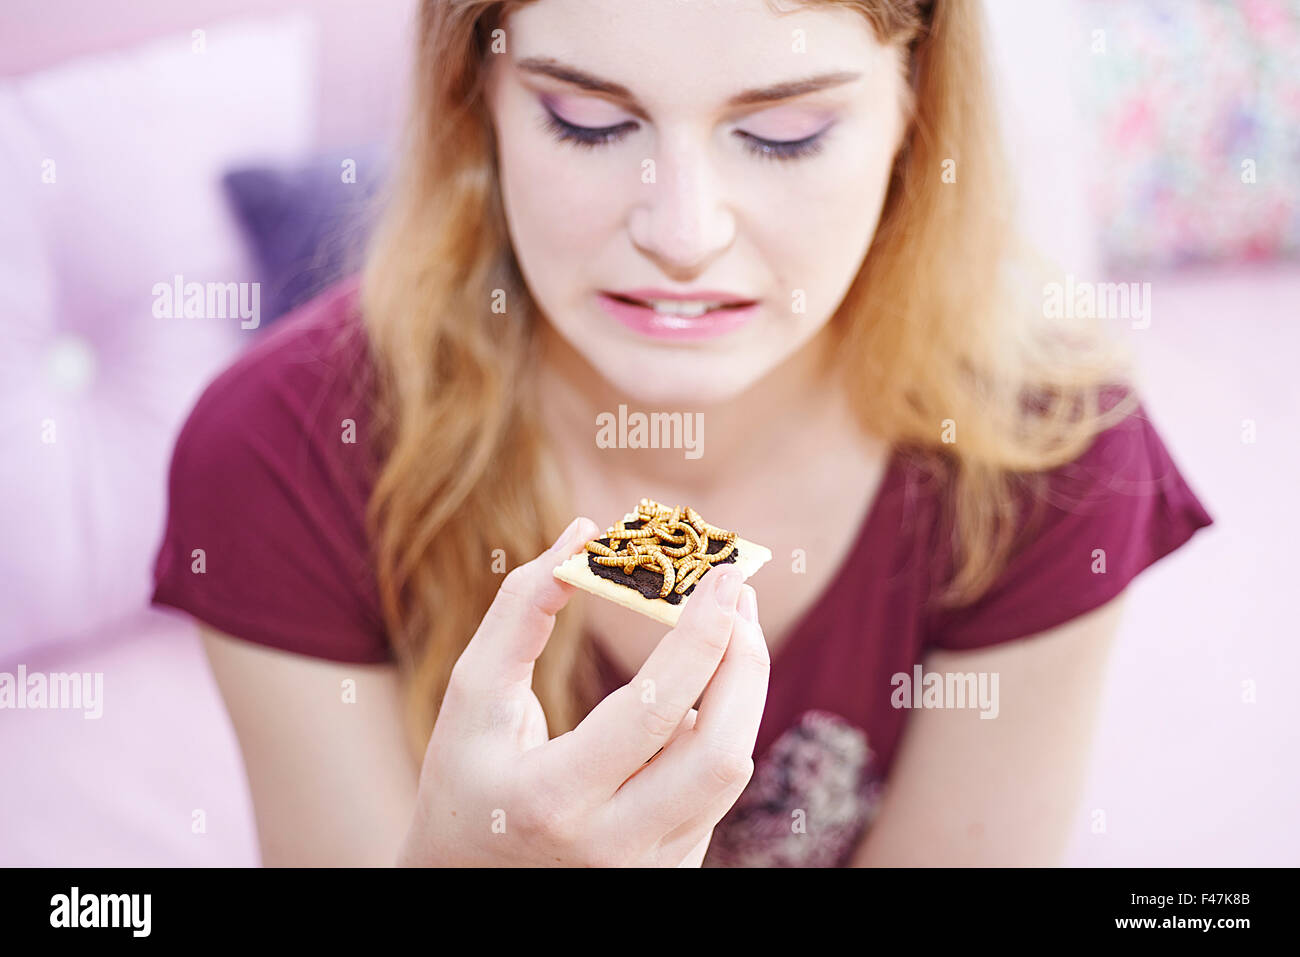 WOMAN EATING INSECT - Stock Image